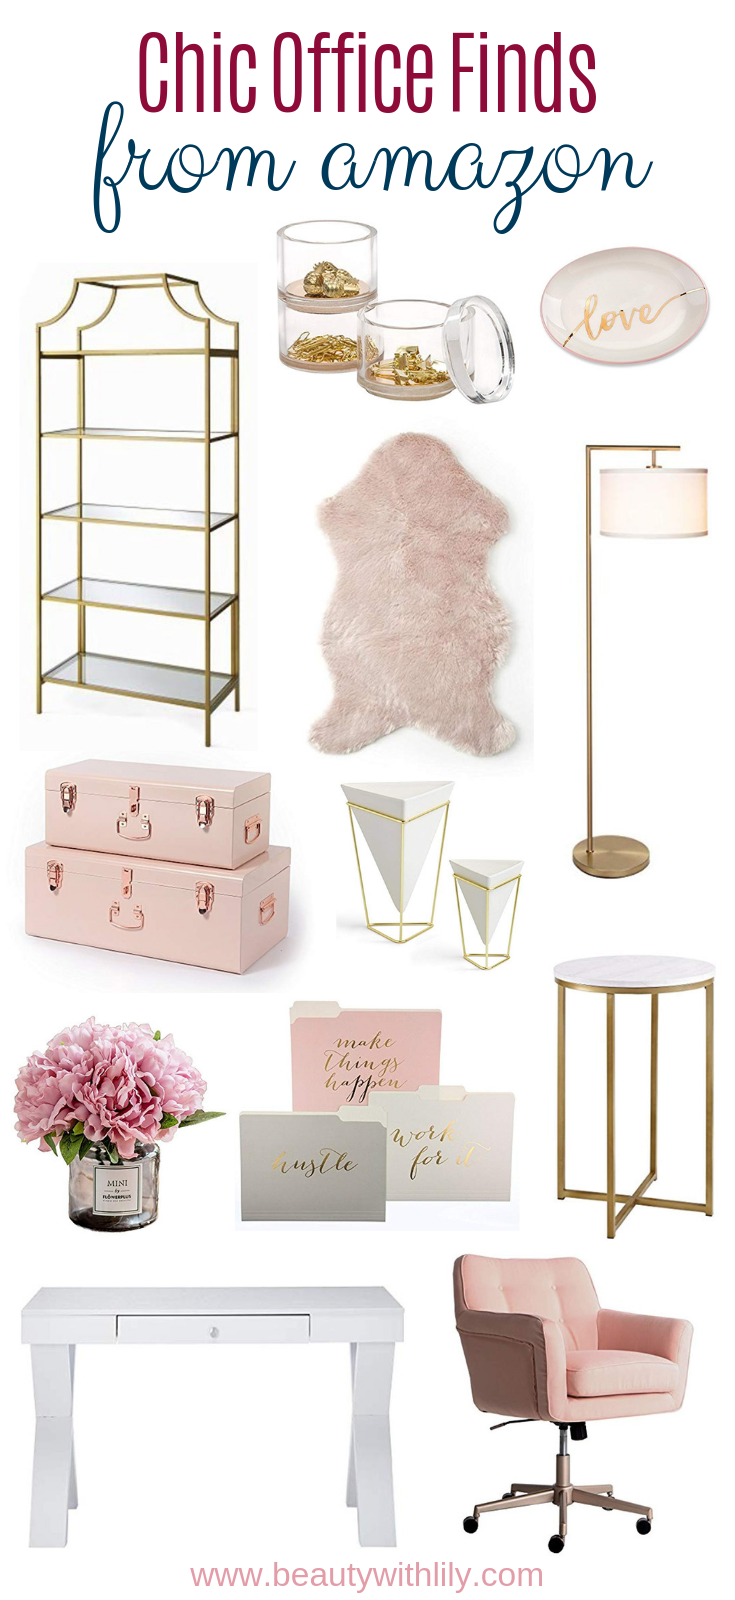 Chic Office Finds // Affordable Home Office Decor // Home Office Ideas // Home Decor // Girly Home Decor // Blush Decor Ideas | Beauty With Lily